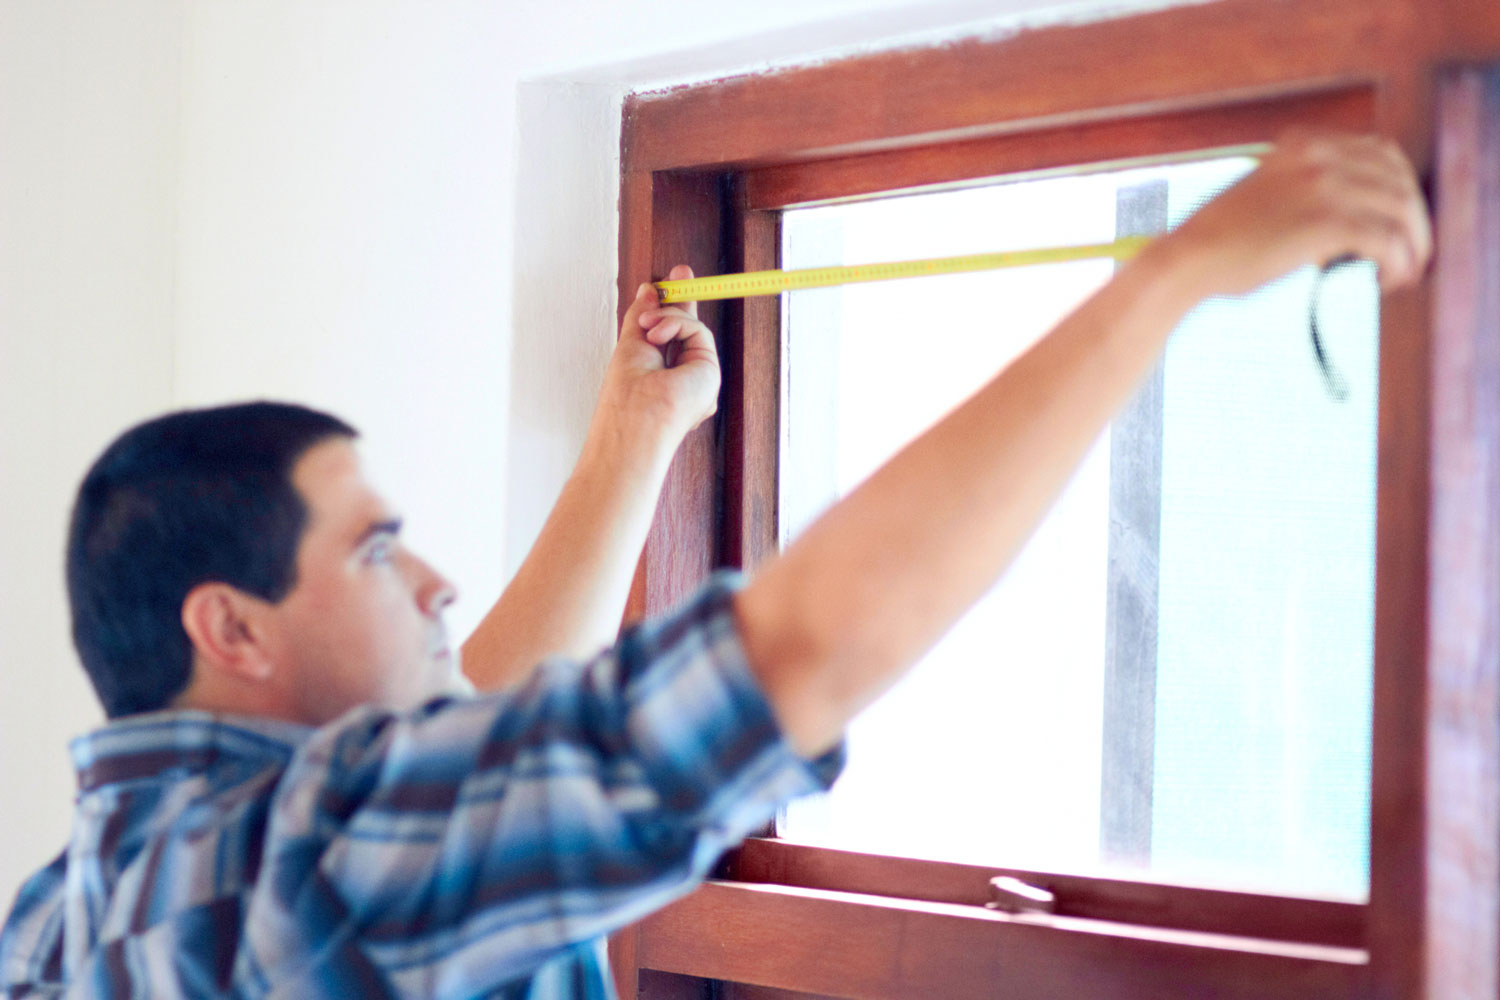 Shot of a middle aged handy man measuring a window